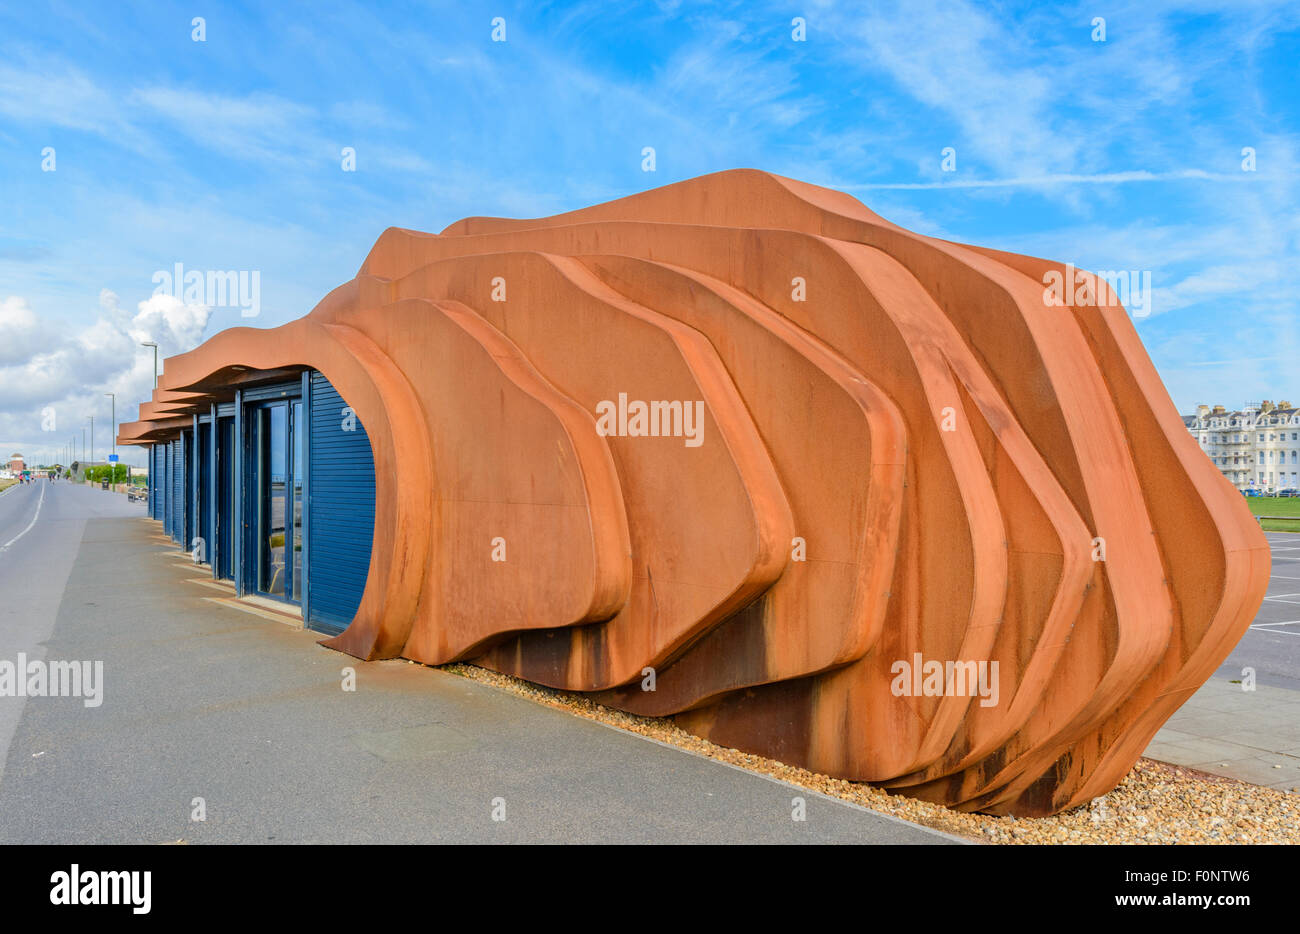 East Beach Cafe on the Promenade in Summer in Littlehampton, West Sussex, England UK. Designed by Thomas Heatherwick - Stock Image